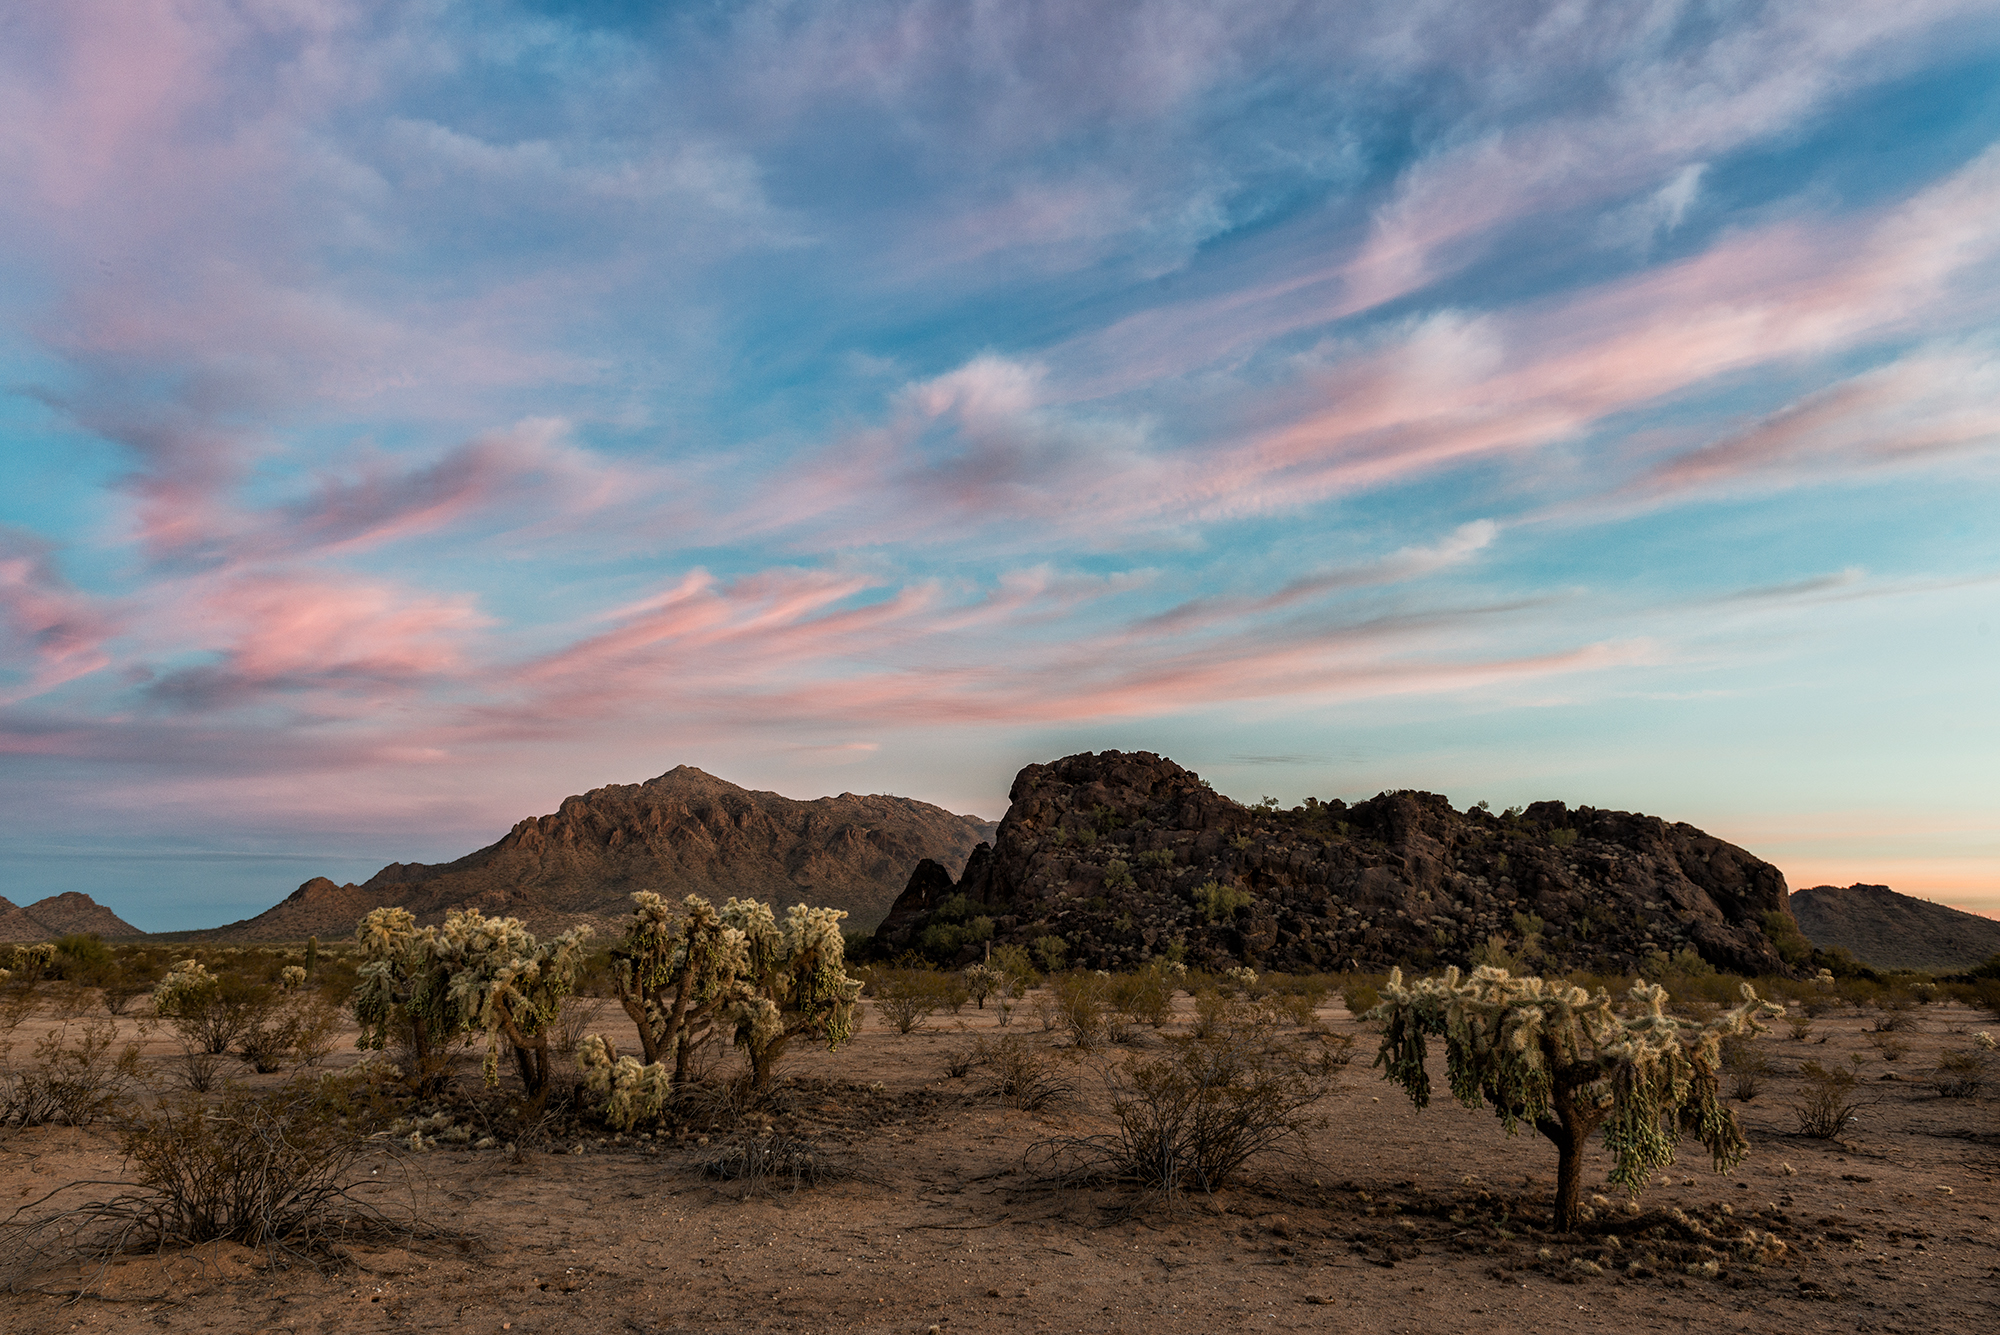 Pink Desert Sunrise. Near Picacho Peak, Arizona, 2016